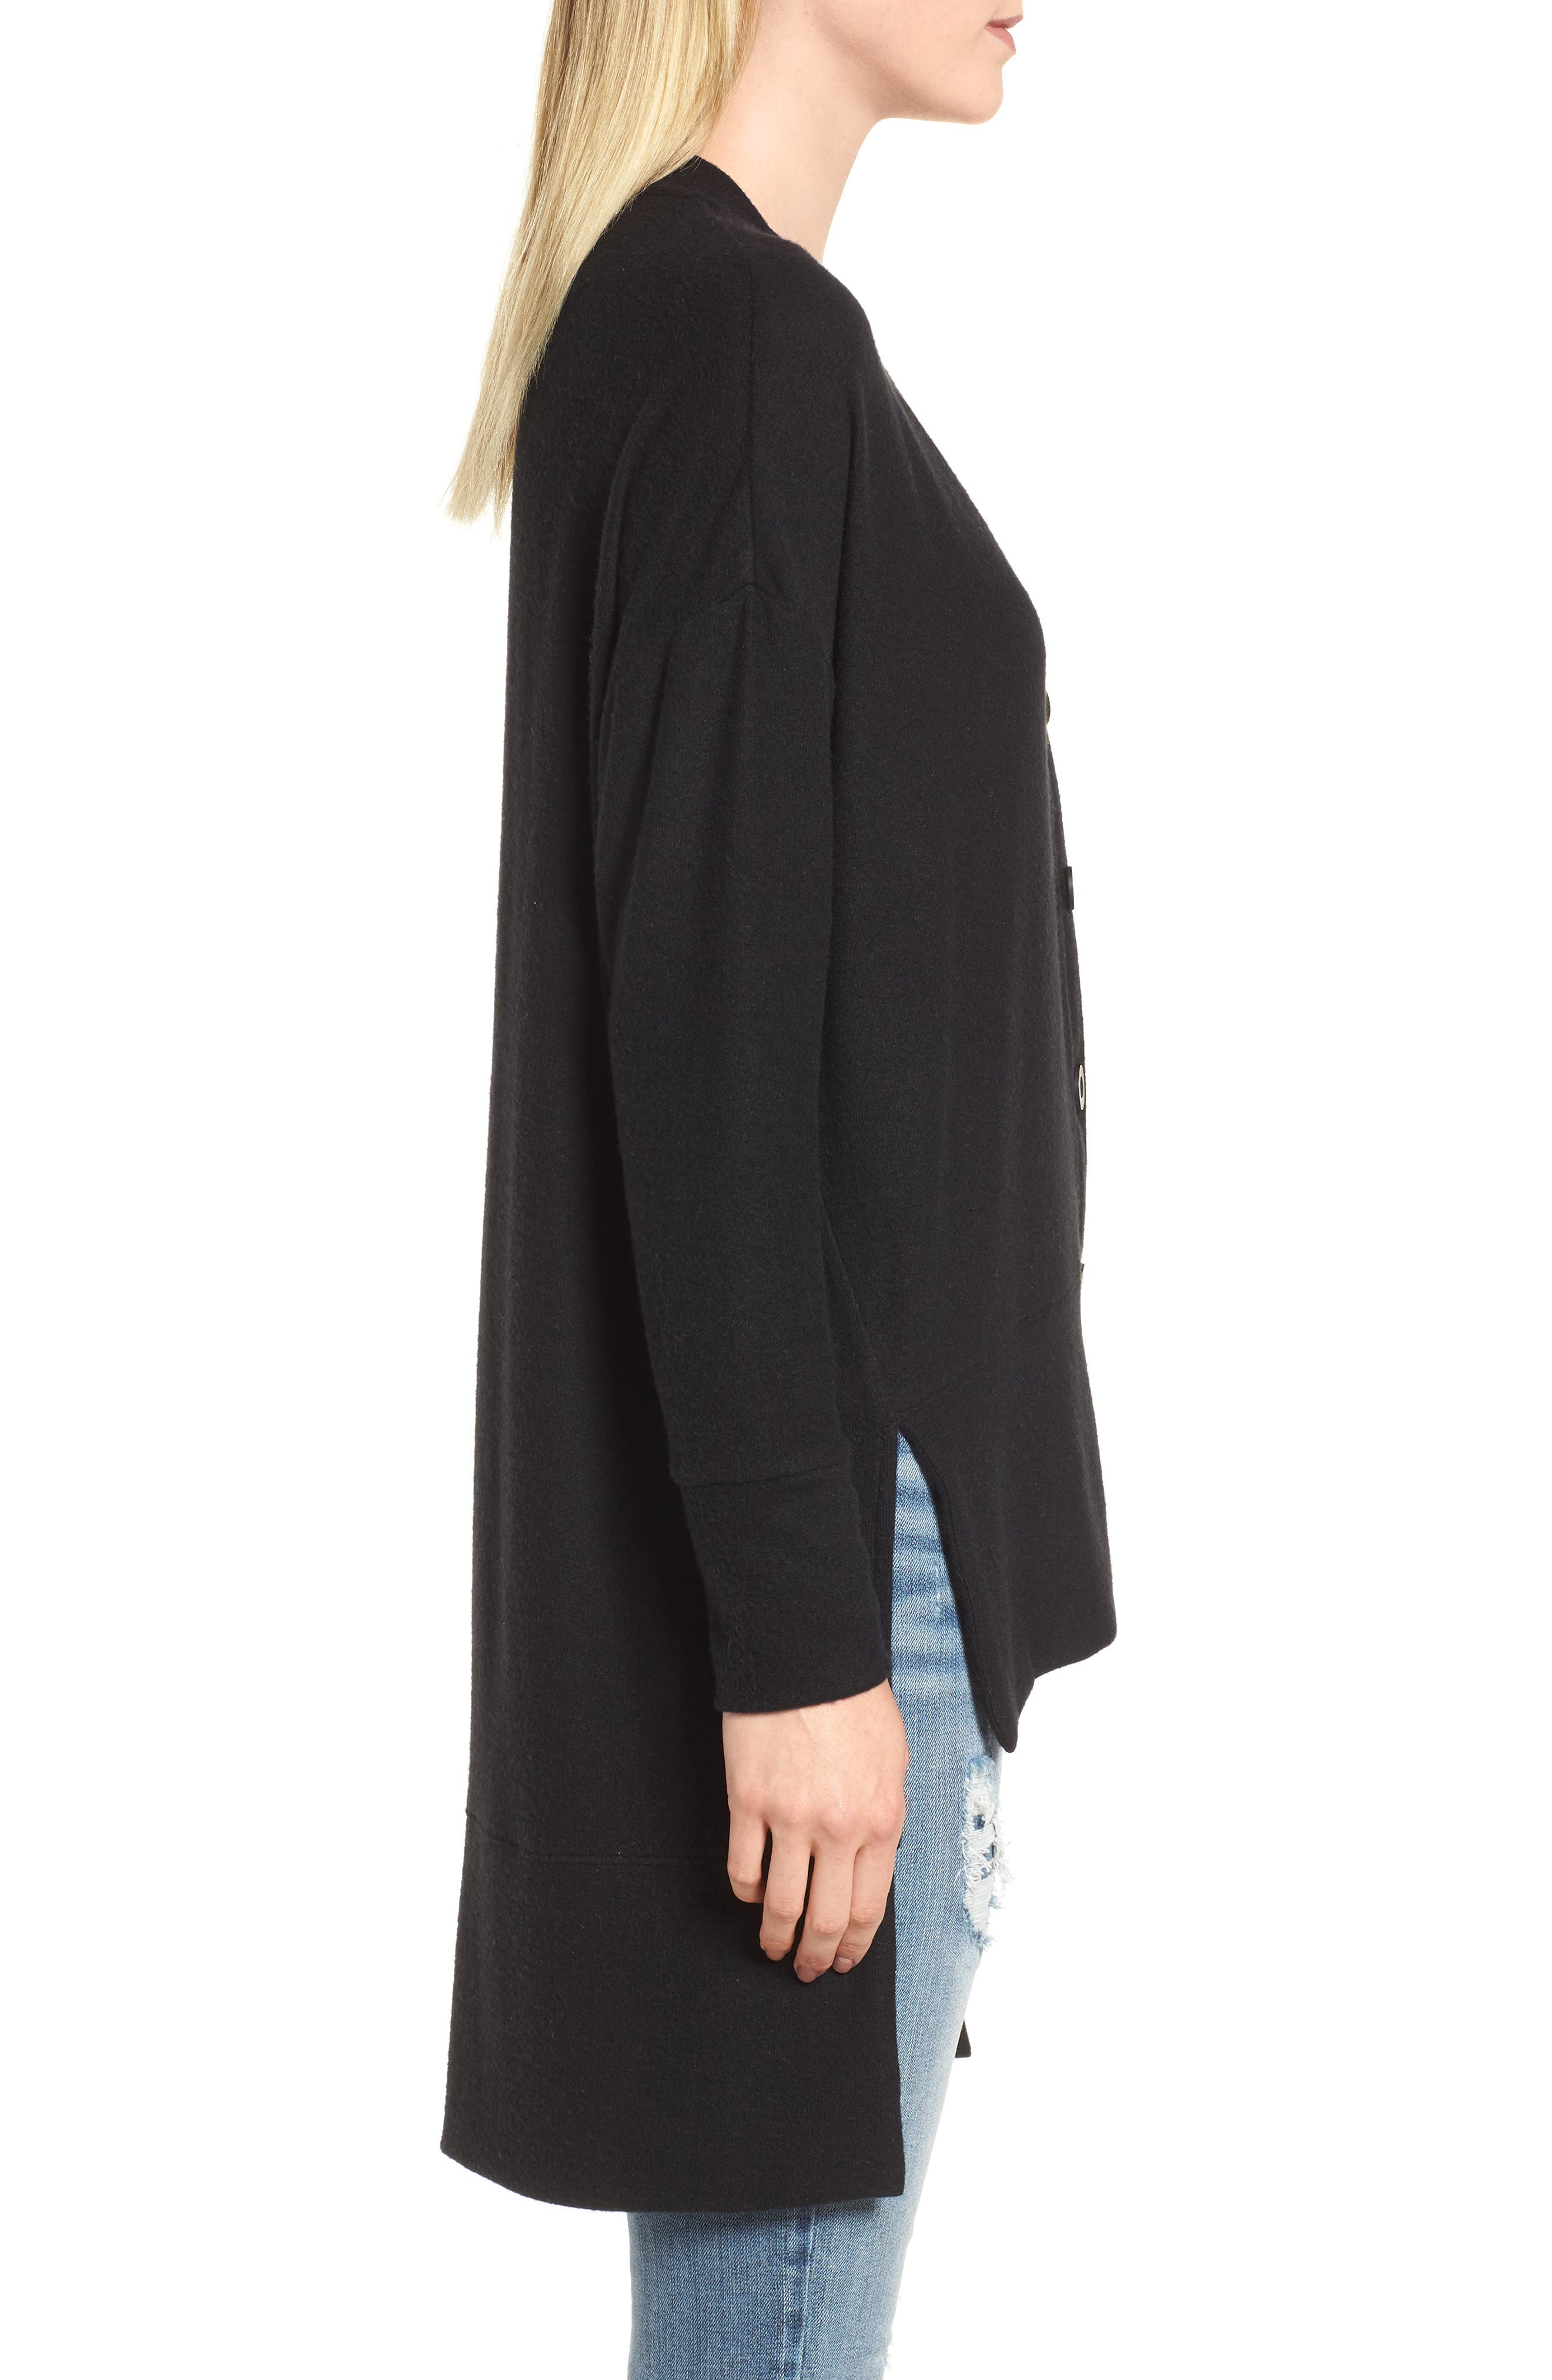 GIBSON, High/Low Easy Cardigan, Alternate thumbnail 4, color, BLACK